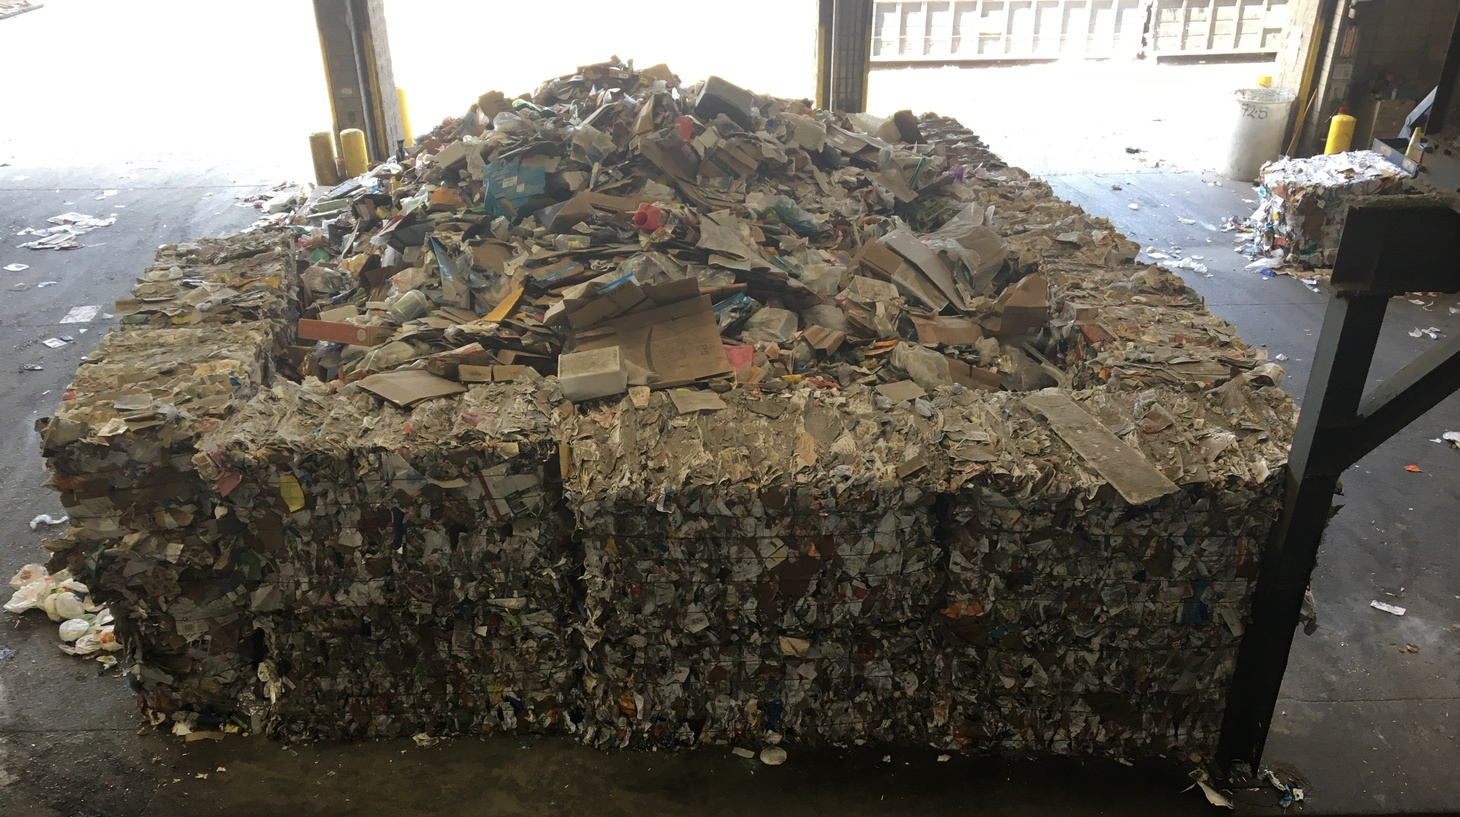 Piles of paper at the Recycling Center in Burbank.